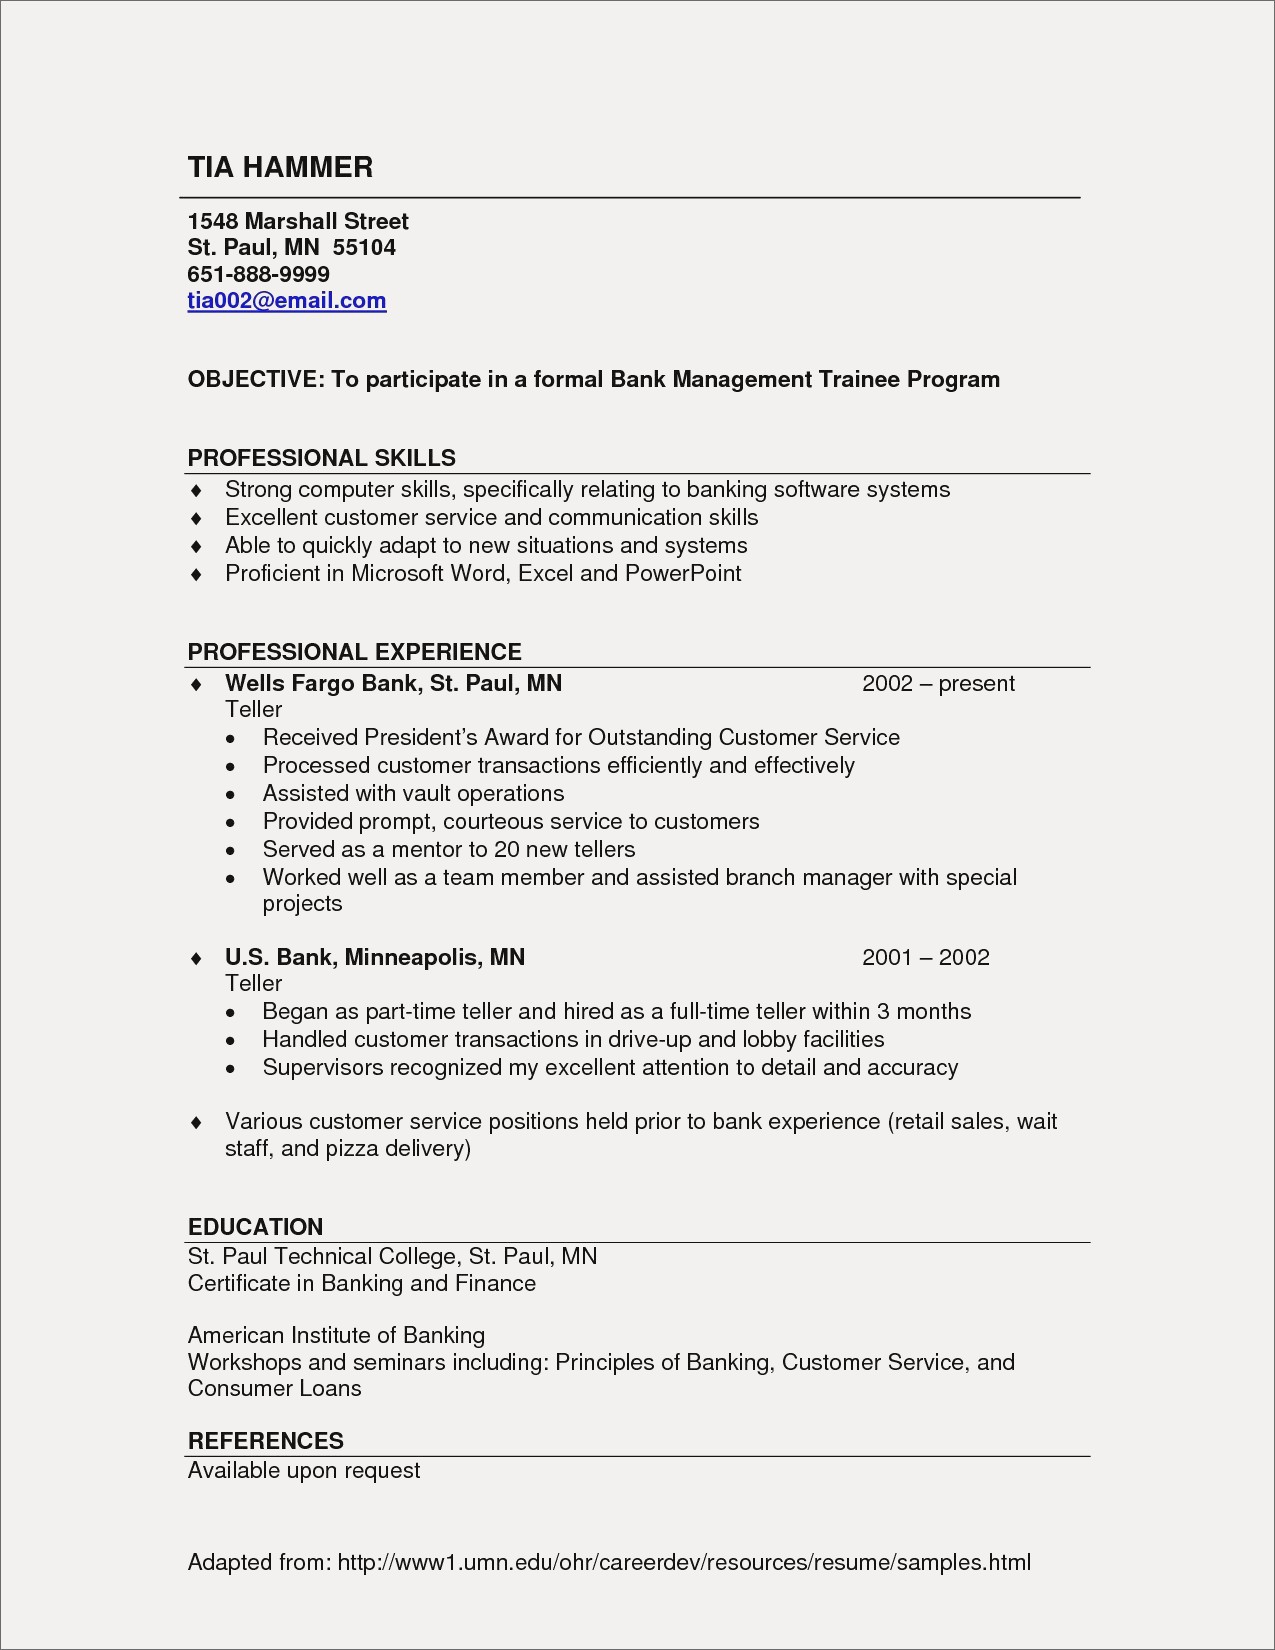 Resume Template Examples - Resume Templates for Customer Service Best Customer Service Resume